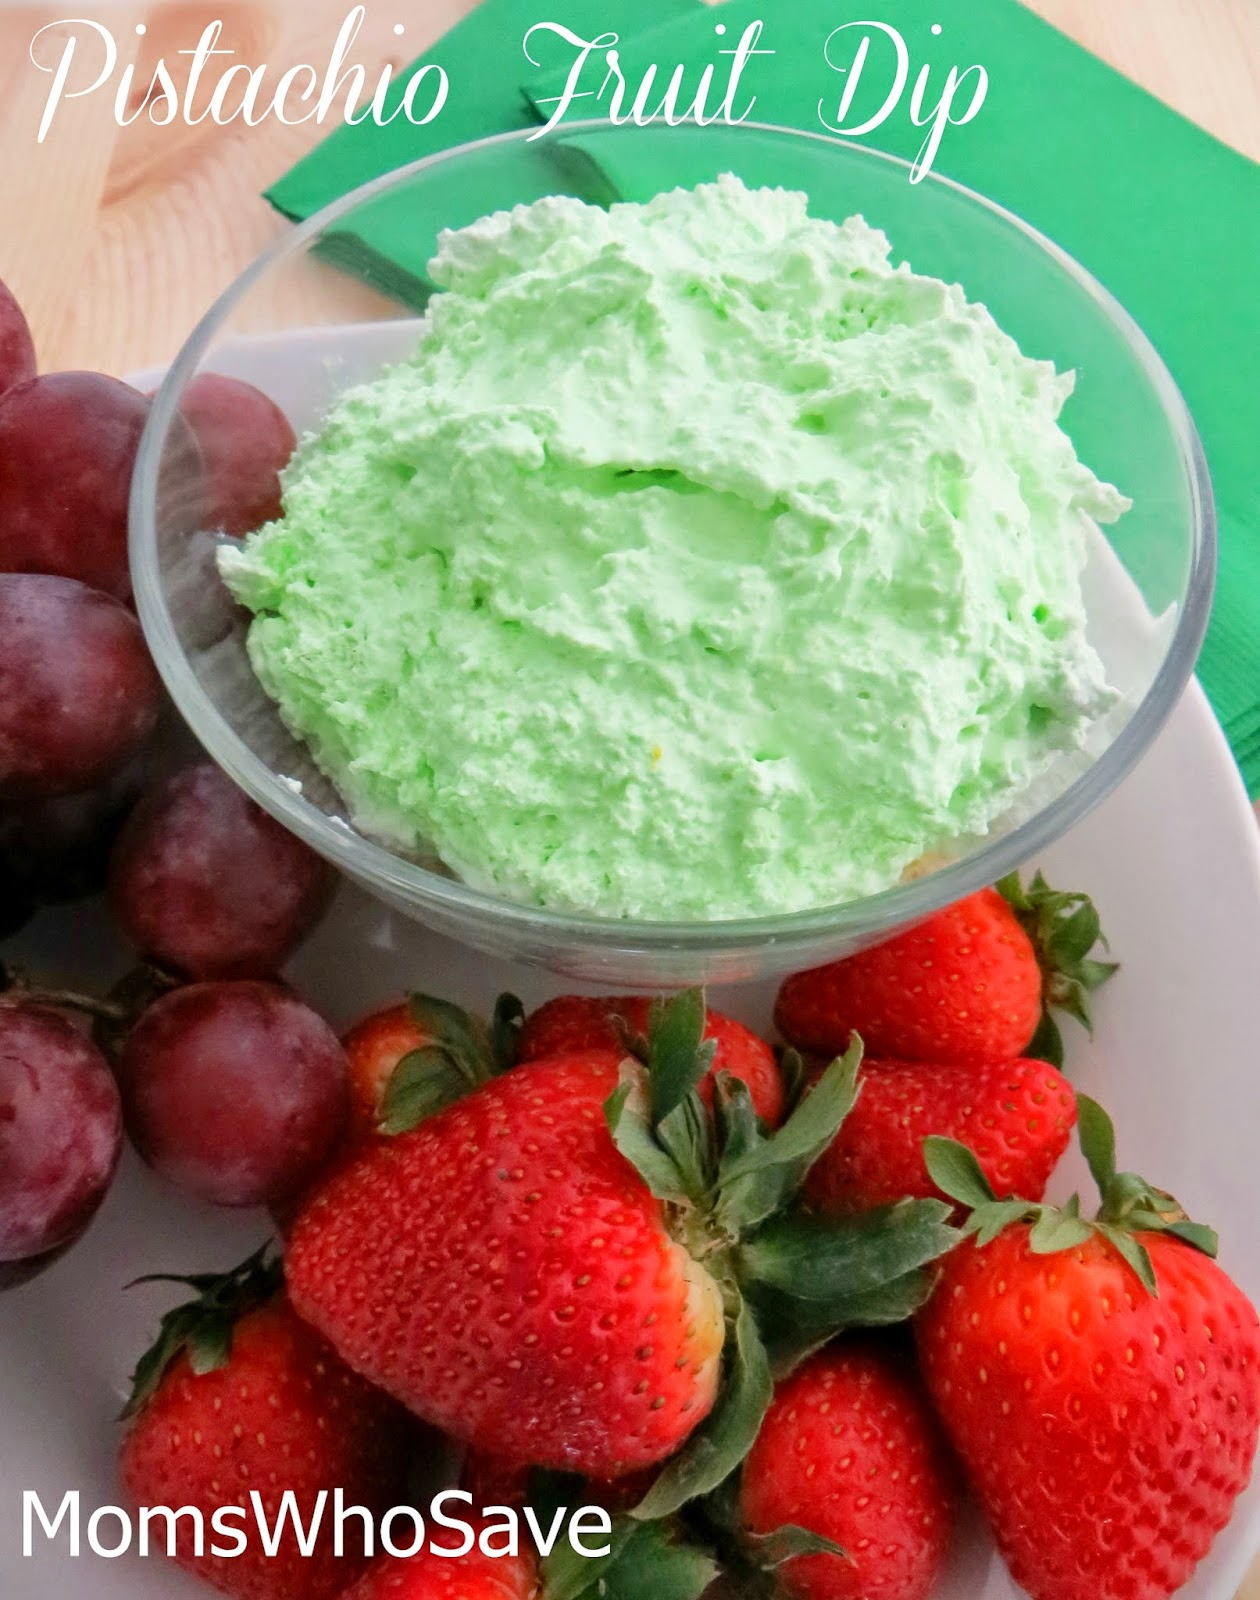 MomsWhoSave | Pistachio Fruit Dip -- You'll Love This Easy Recipe!